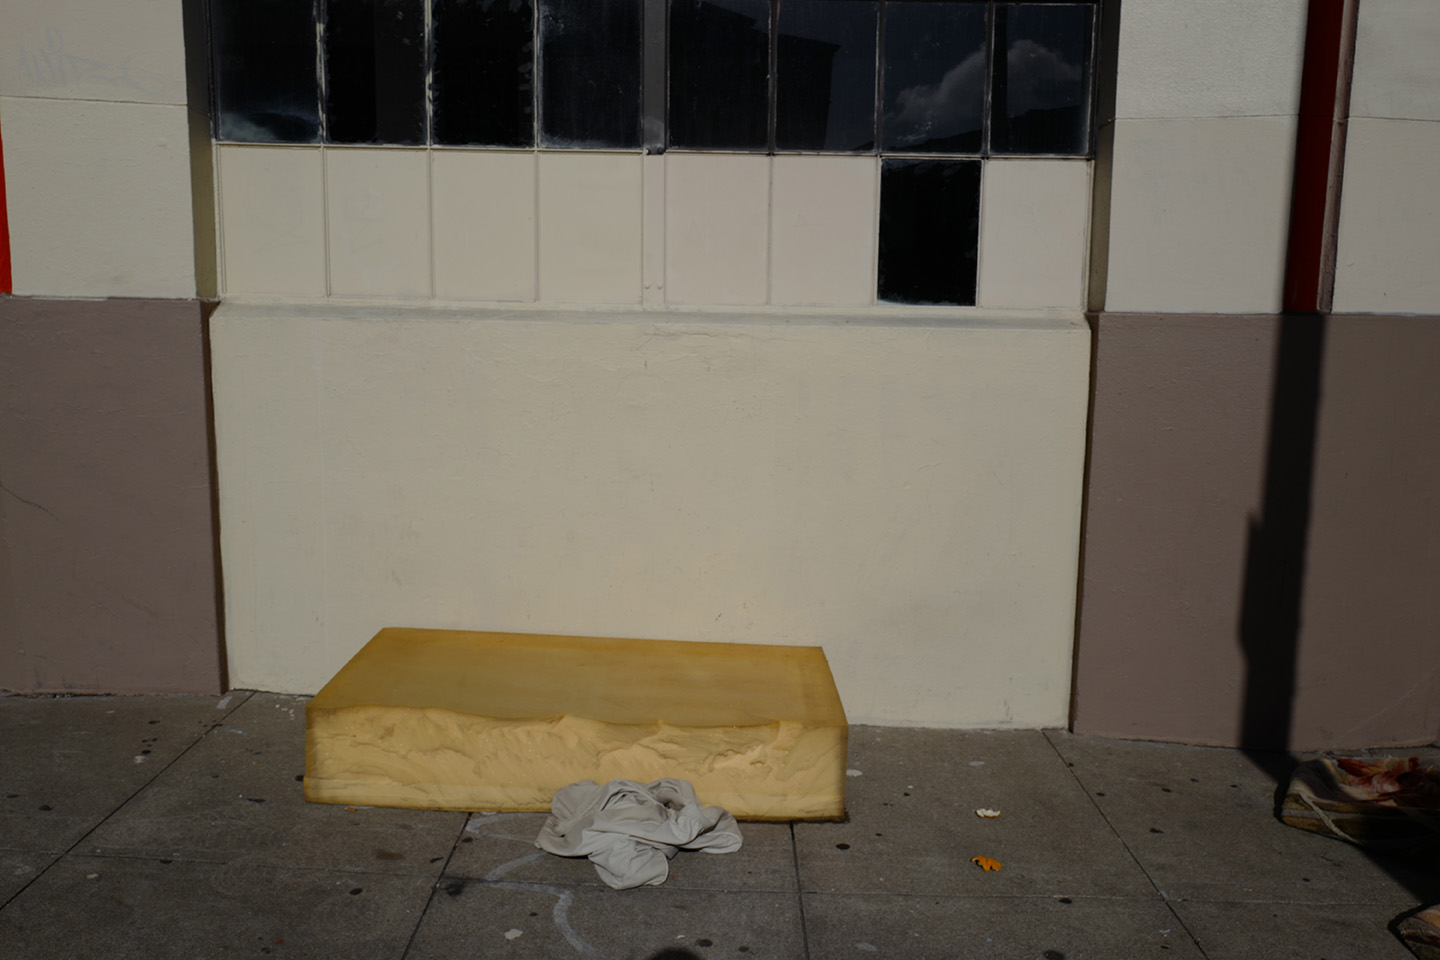 YellowFoamMattress049.jpg